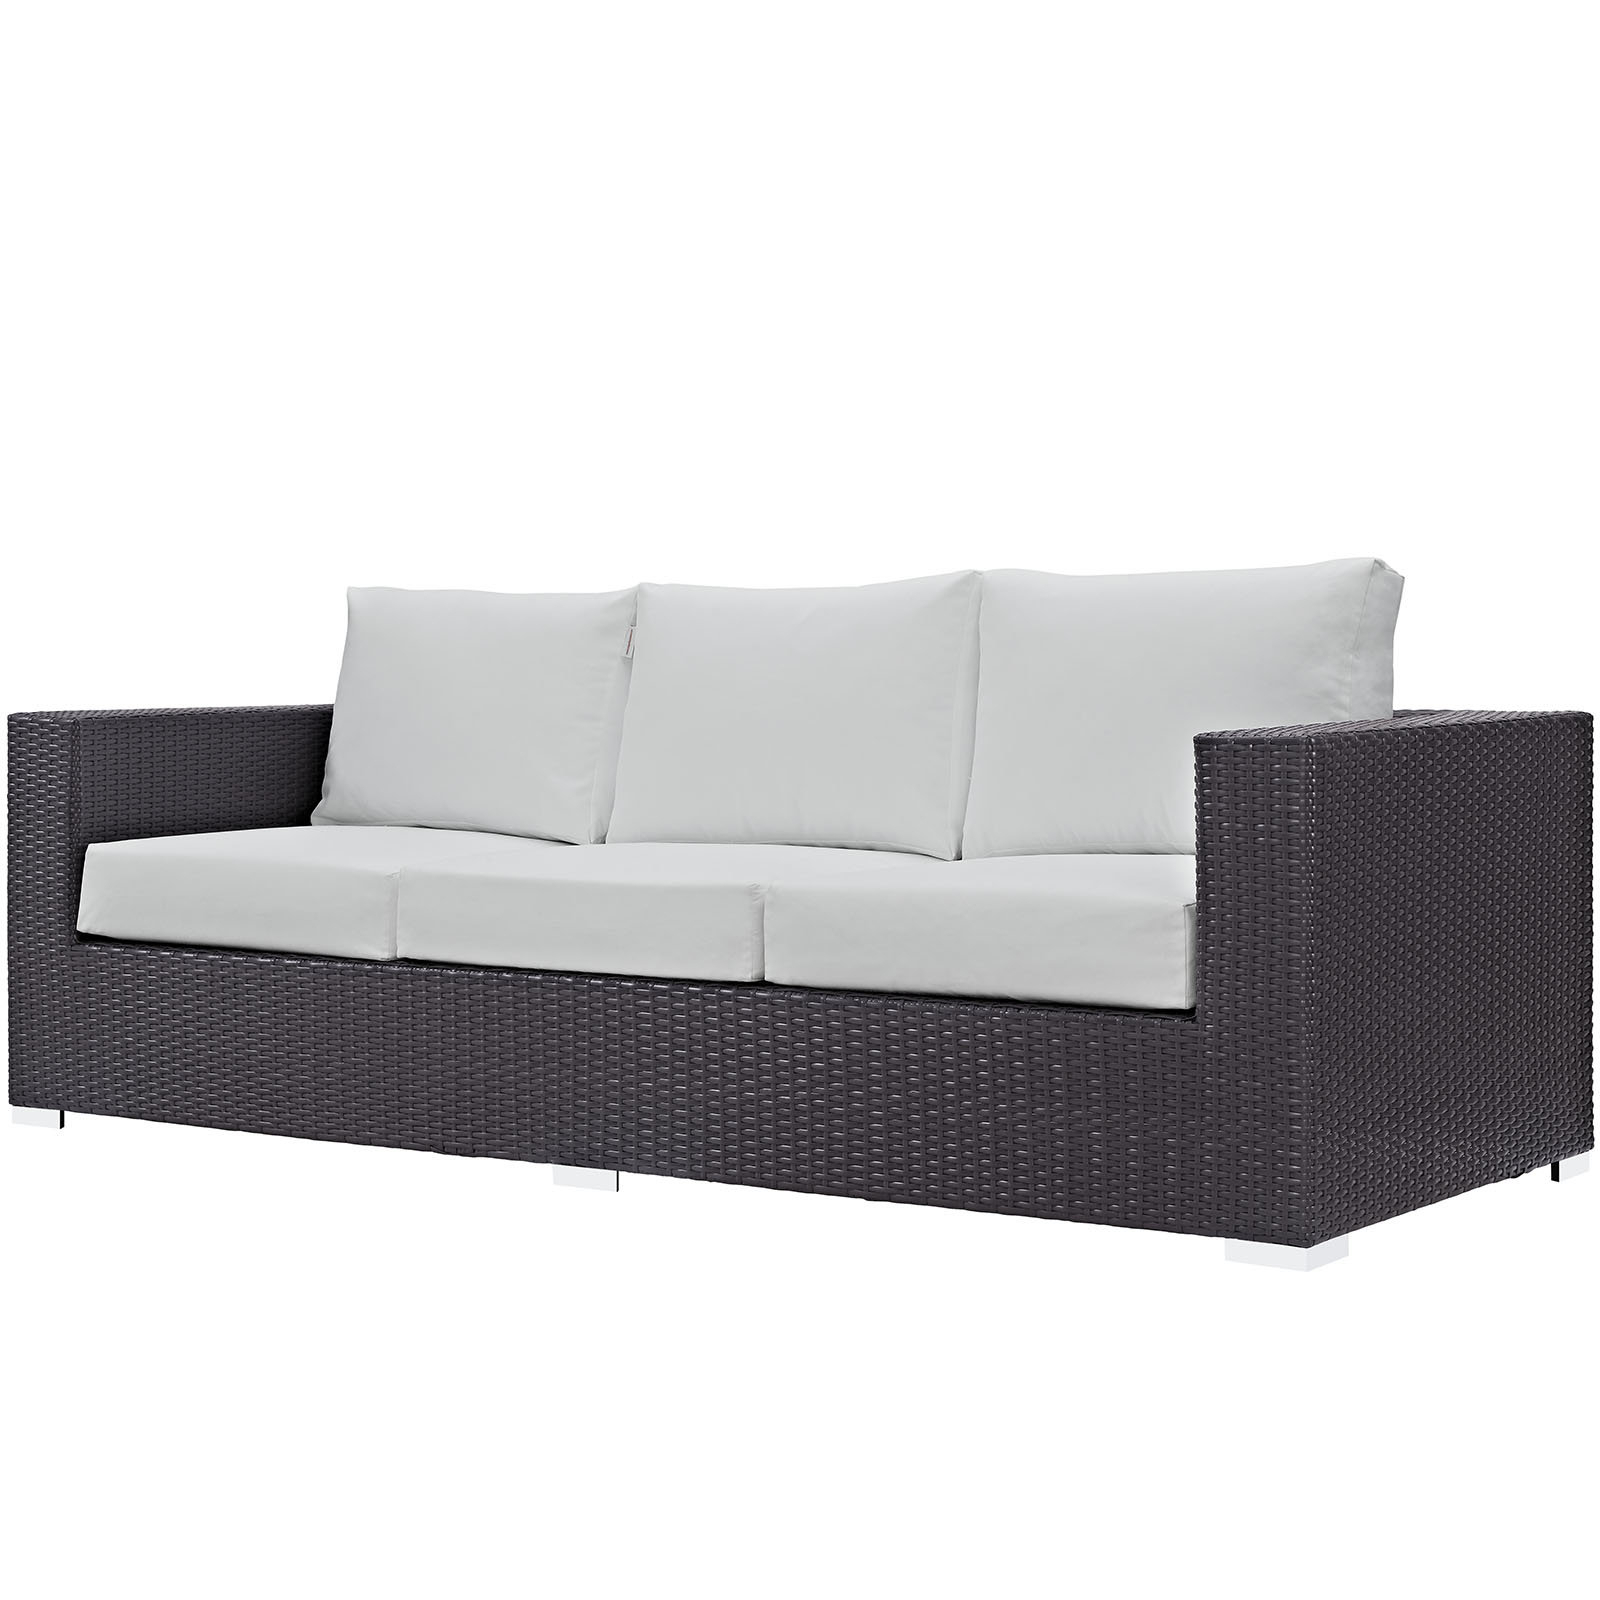 Loggins Patio Sofas With Cushions With Regard To Trendy Brentwood Patio Sofa With Cushions & Reviews (Gallery 18 of 20)